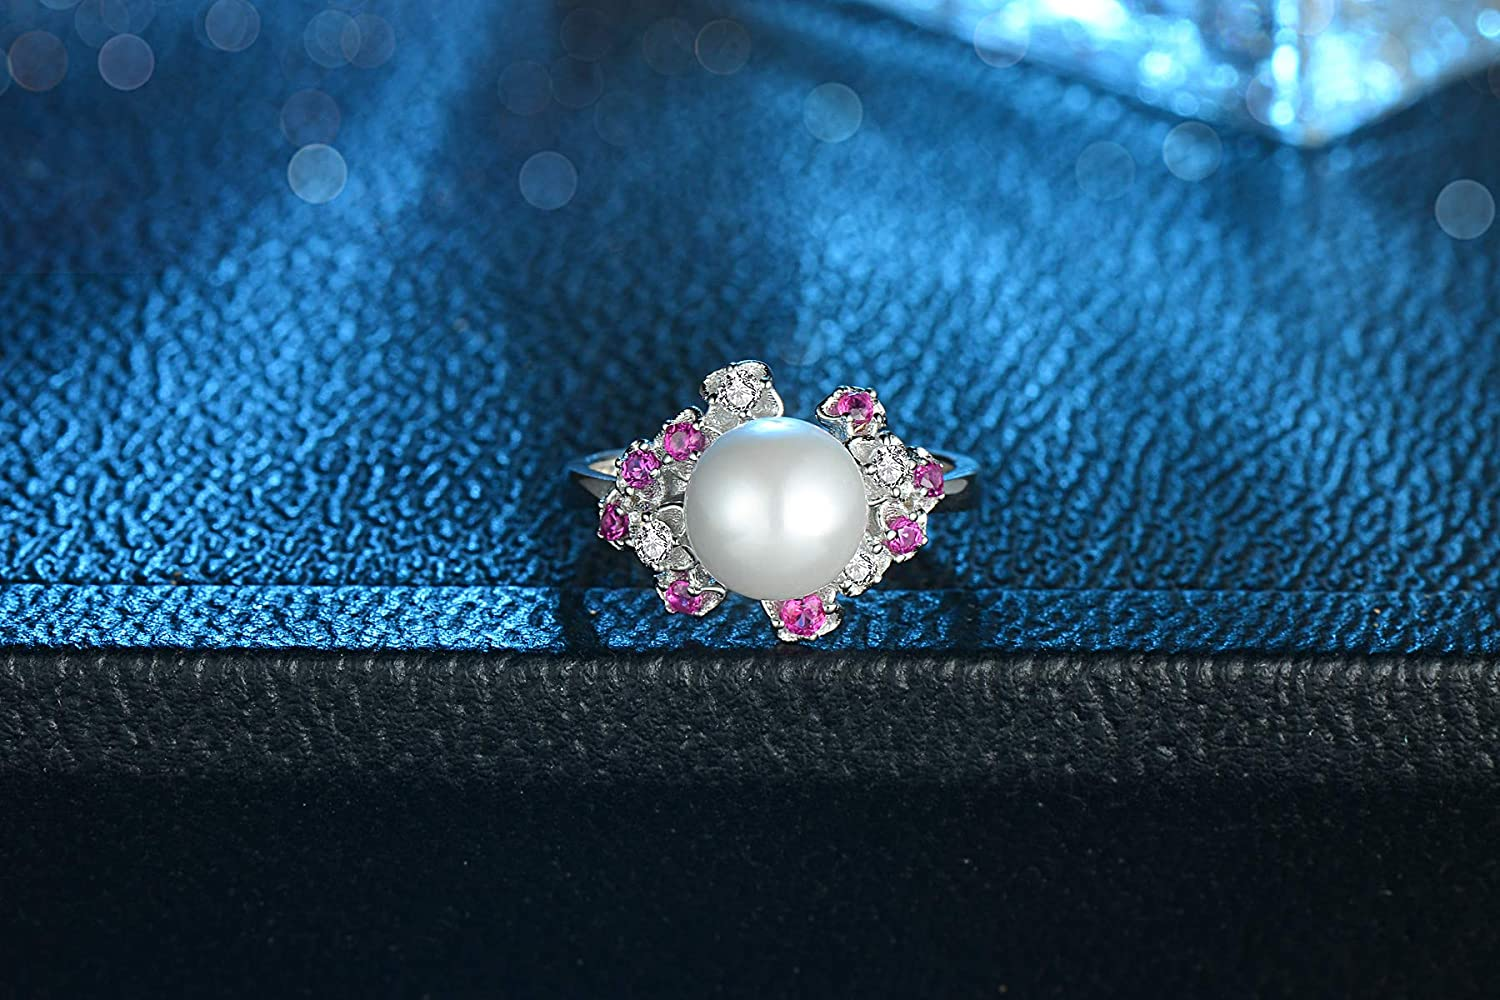 Craft: Plating Artificial Zircon TZSS S925 Sterling Silver fine Color Zircon Flower Pearl Ring Material: S925 Silver Ring Width 2.6mm Weight About 3.6 g. Pearl Inlay Flower Head 12.8 15.6mm